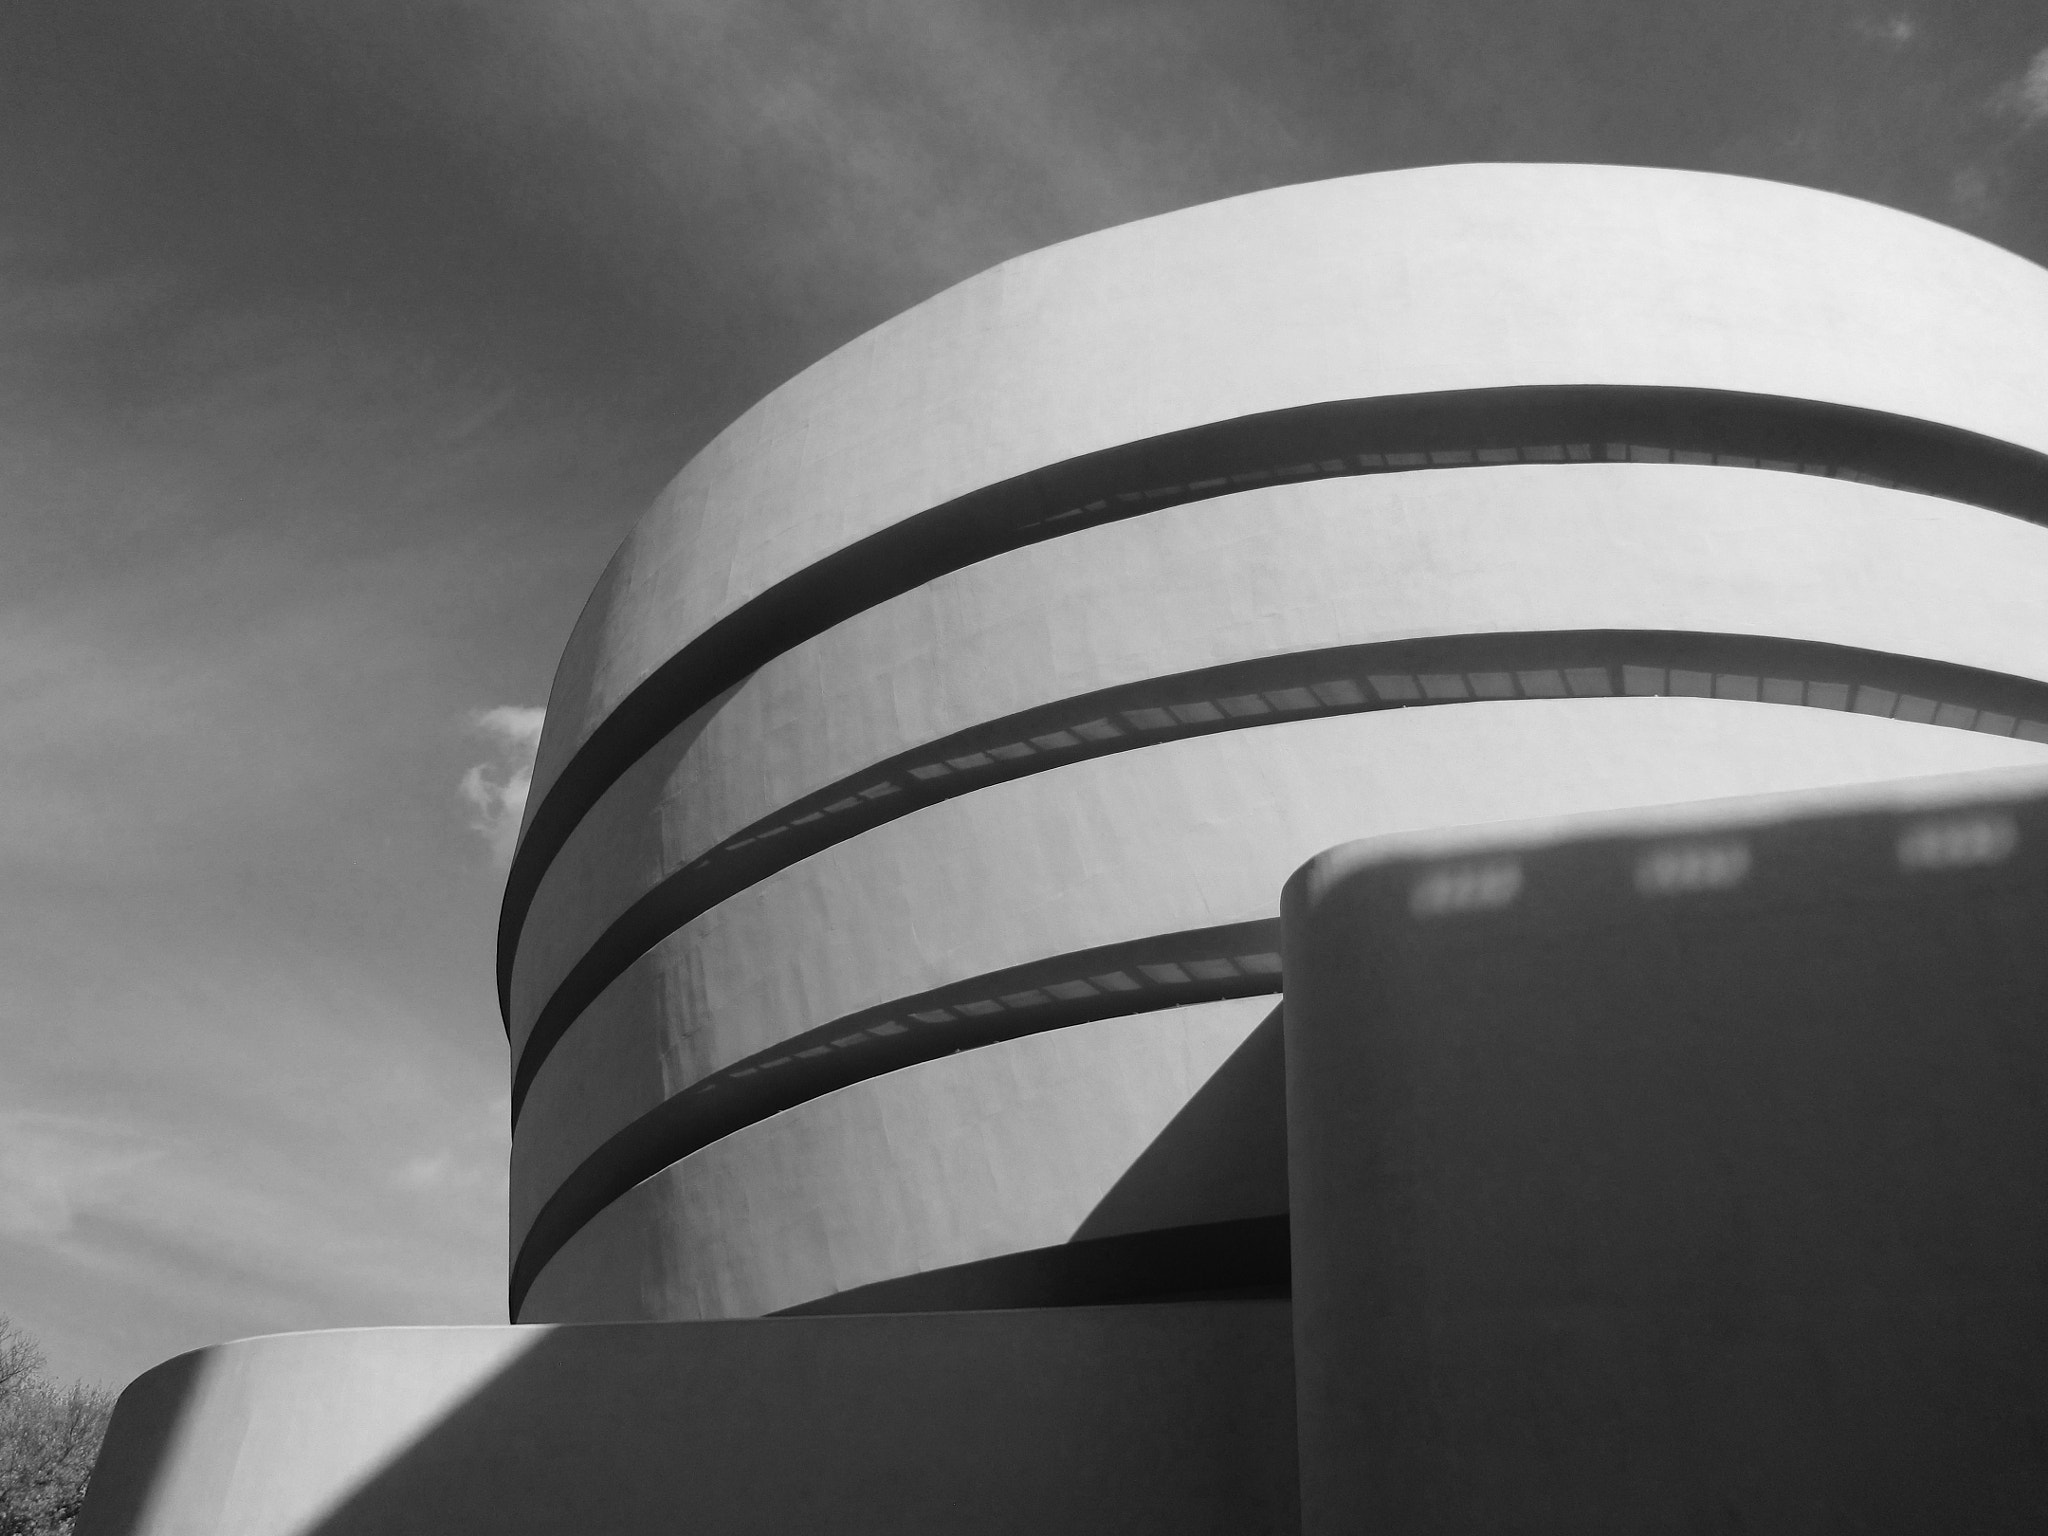 Photograph Guggenheim Museum NYC by Audrey H on 500px